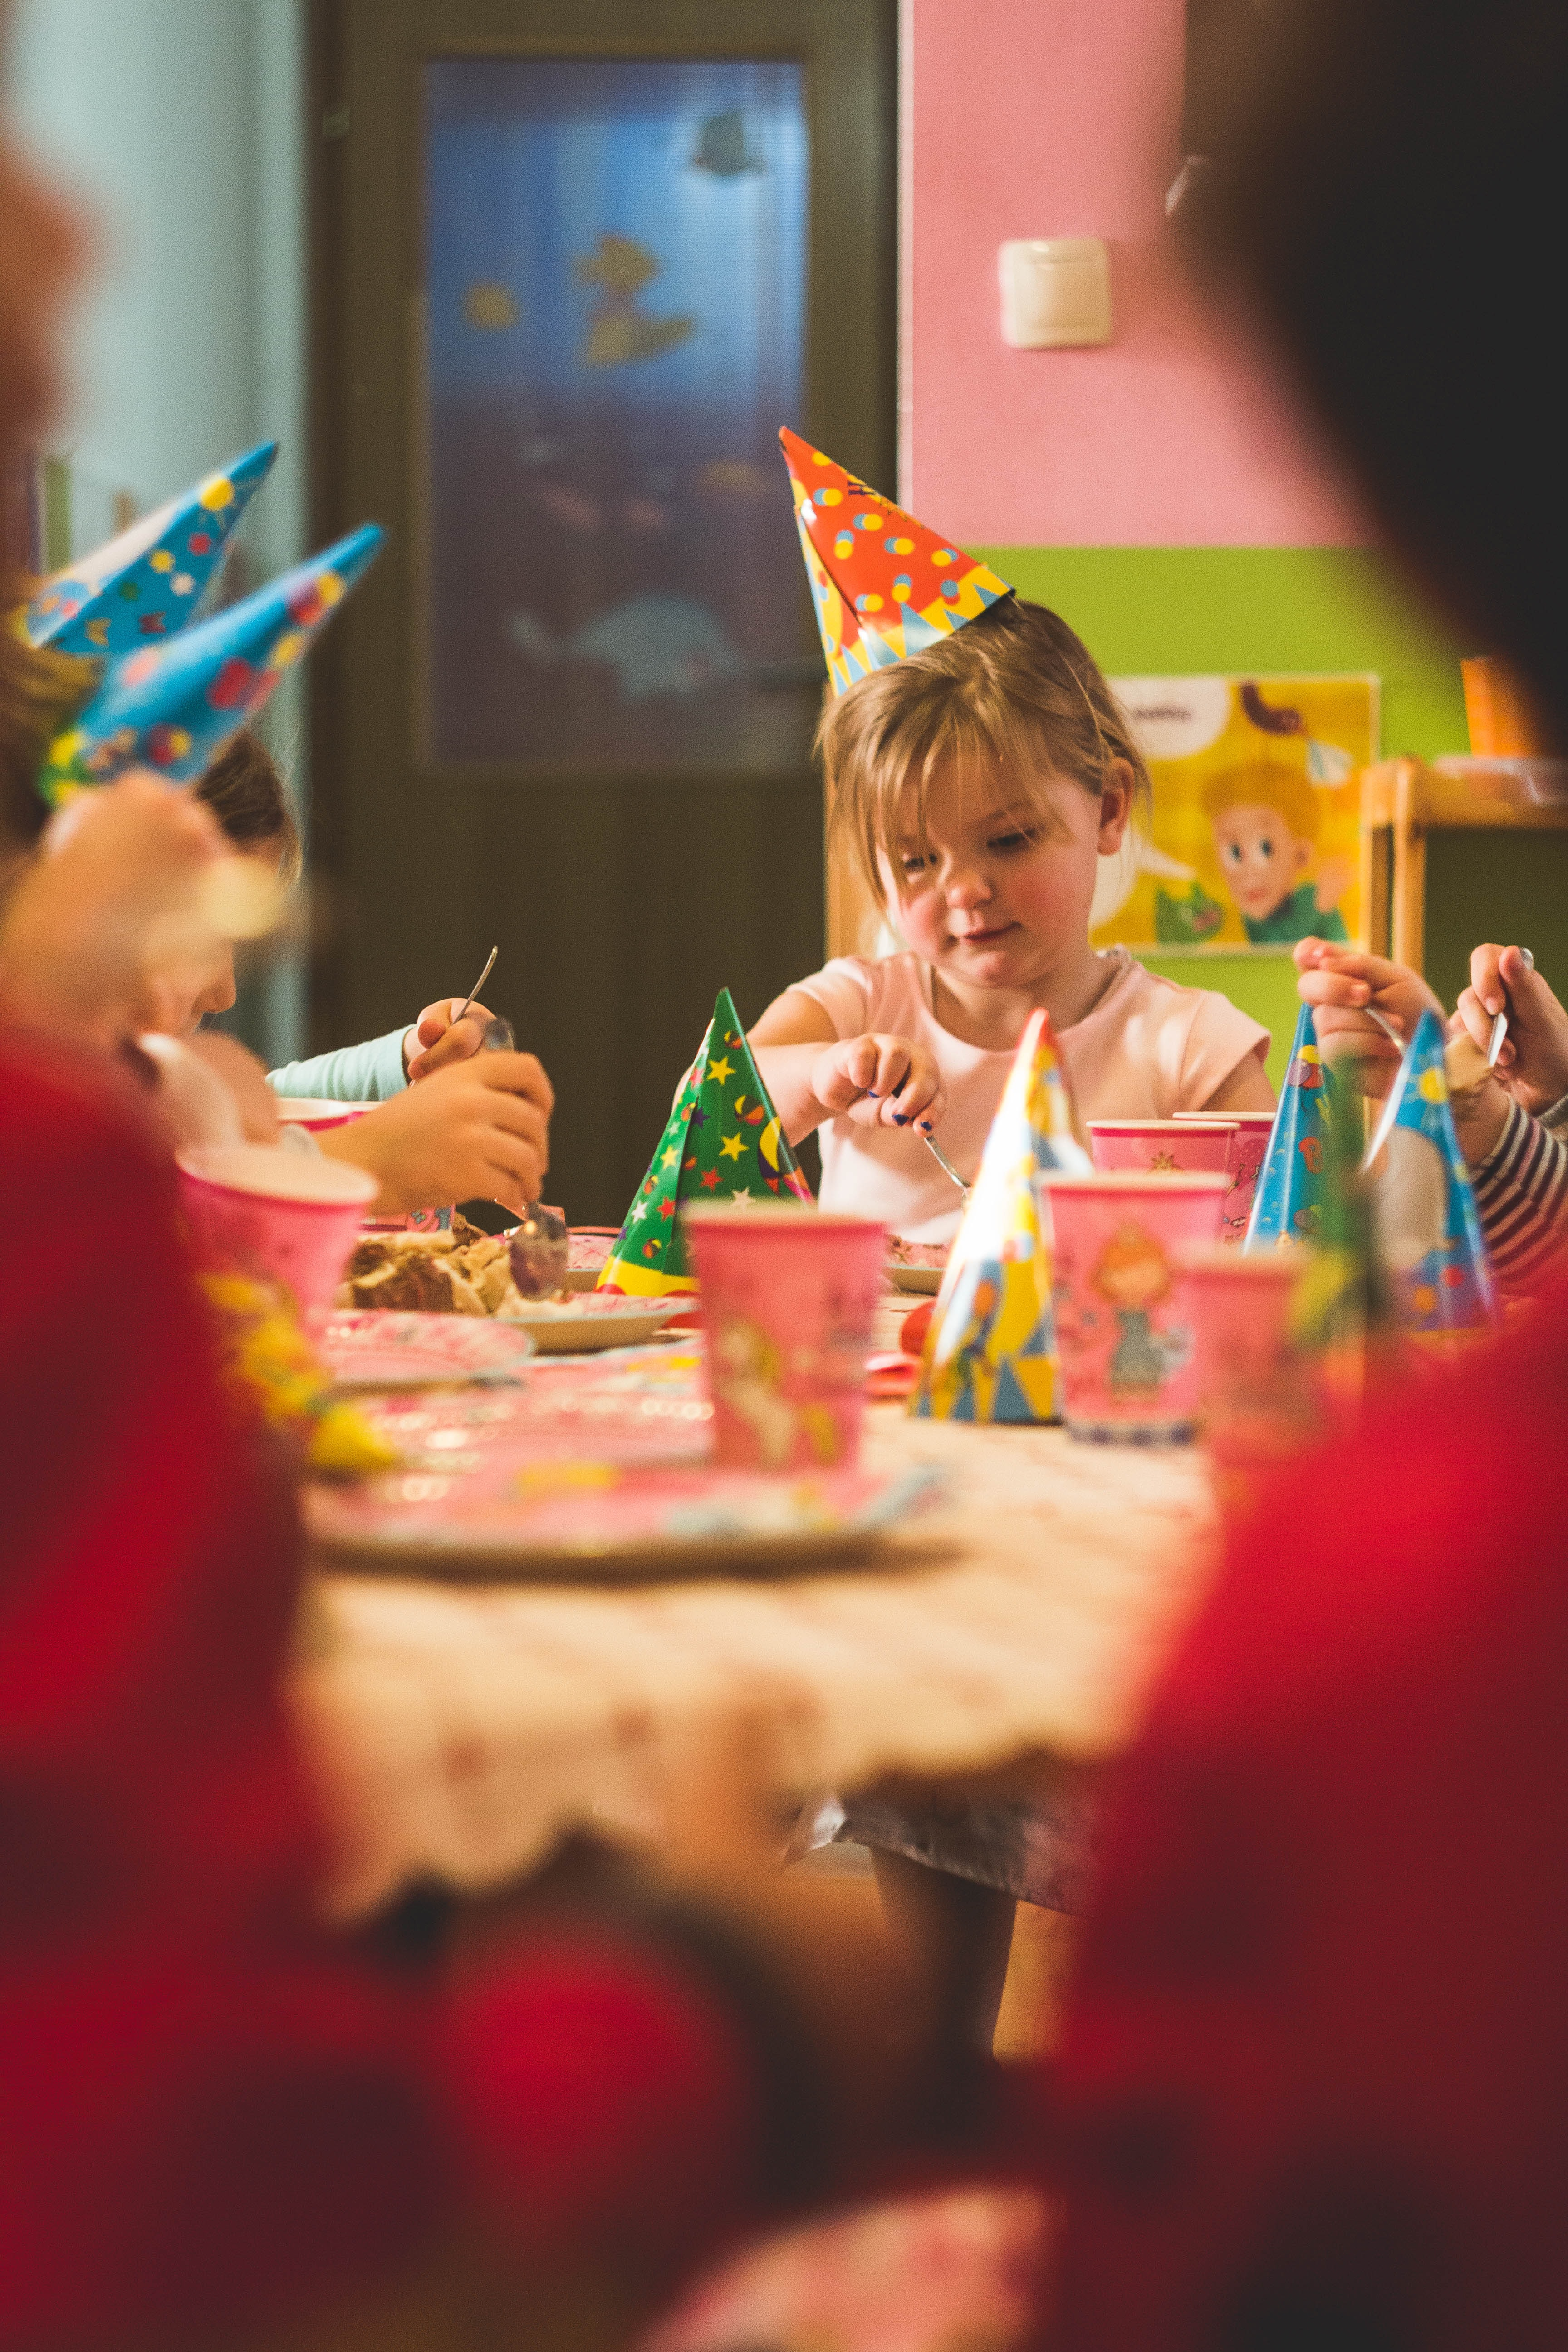 girl wearing party hat sitting in front of table